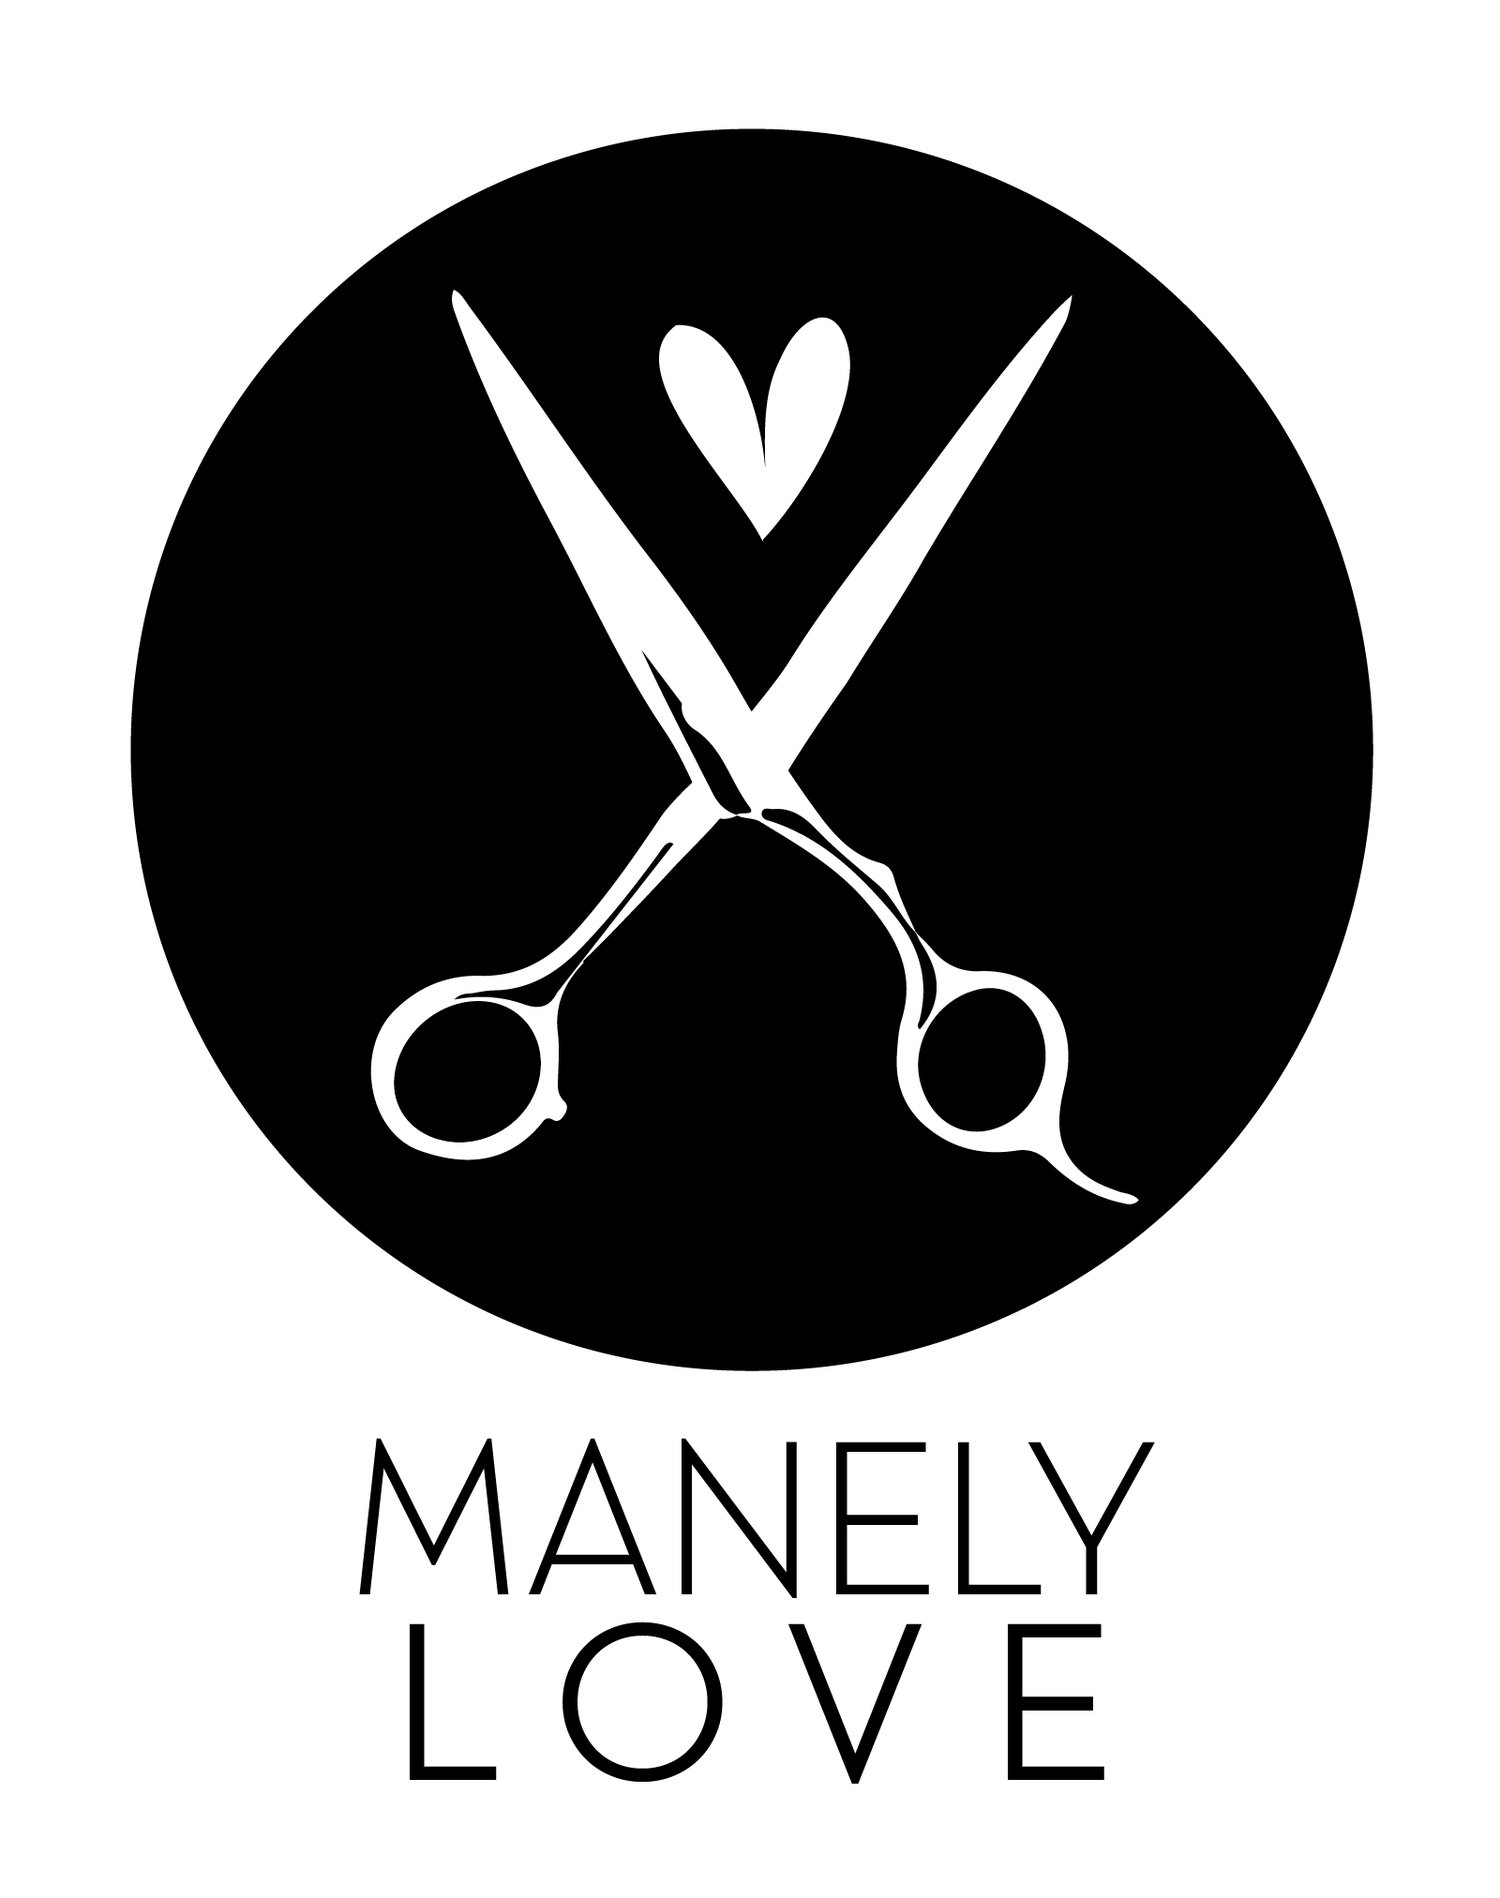 Manely Love by Sarah D.